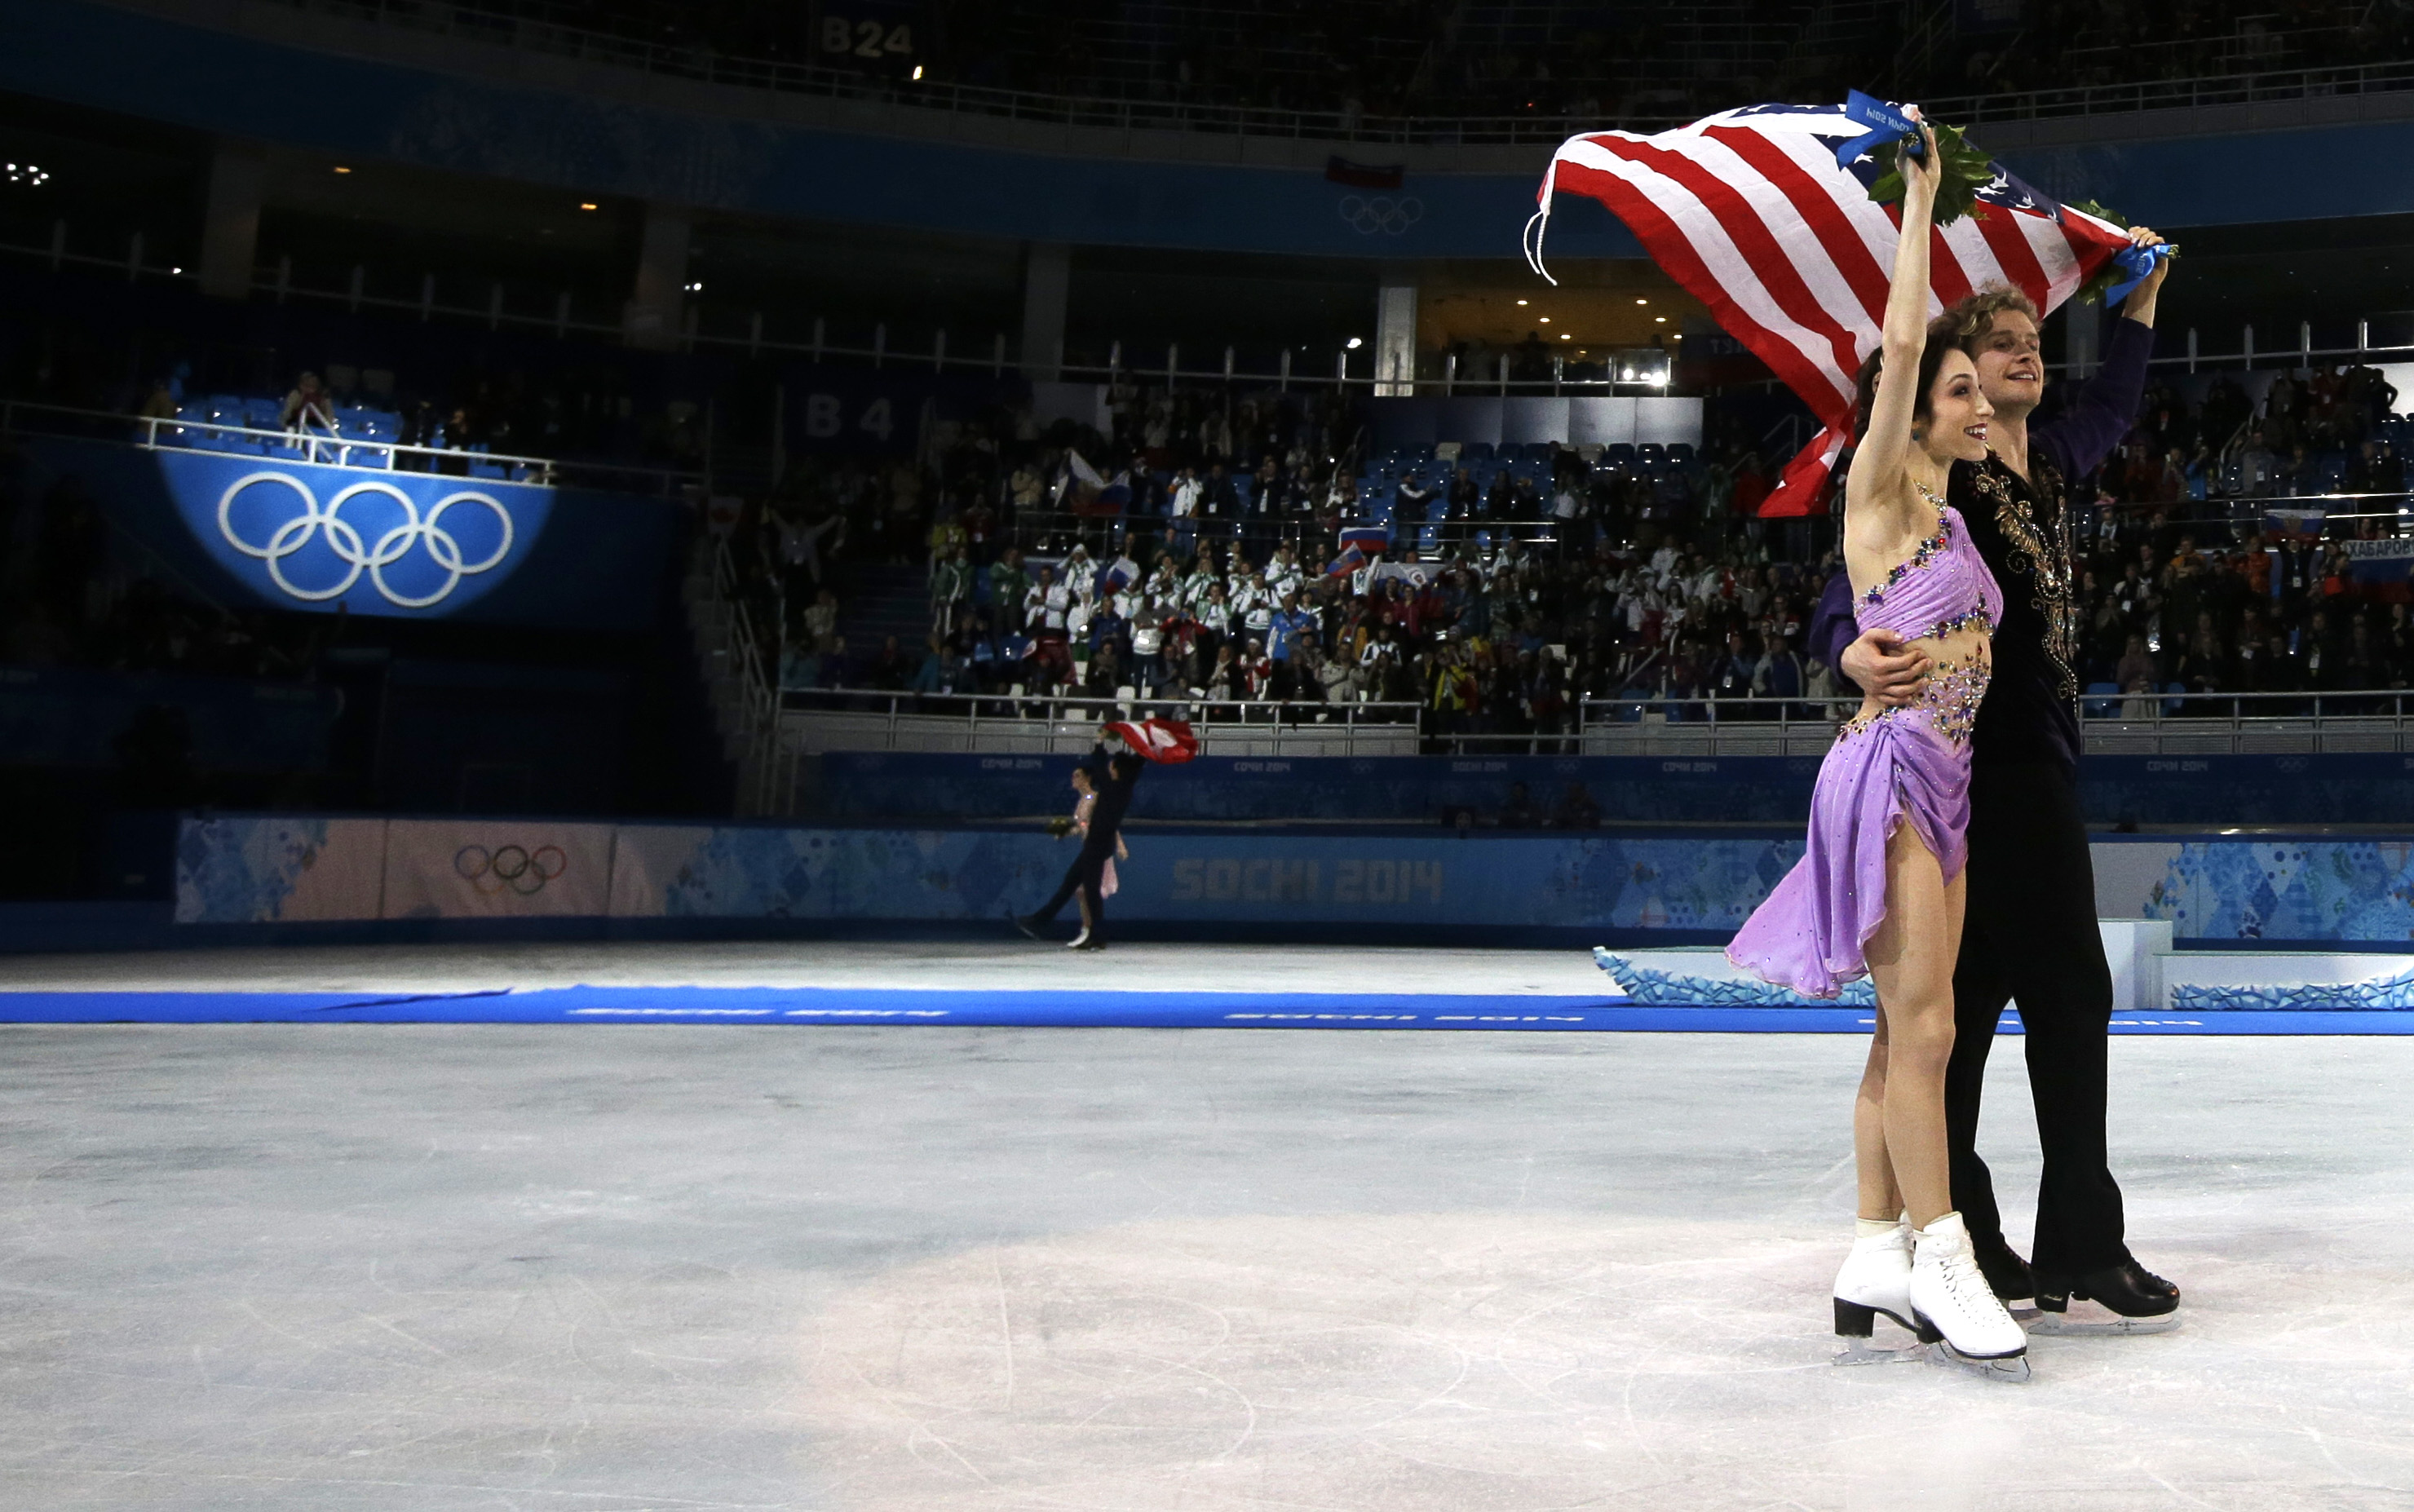 Meryl Davis and Charlie White of the United States celebrate their first place following the flower ceremony in the ice dance free dance figure skating finals.